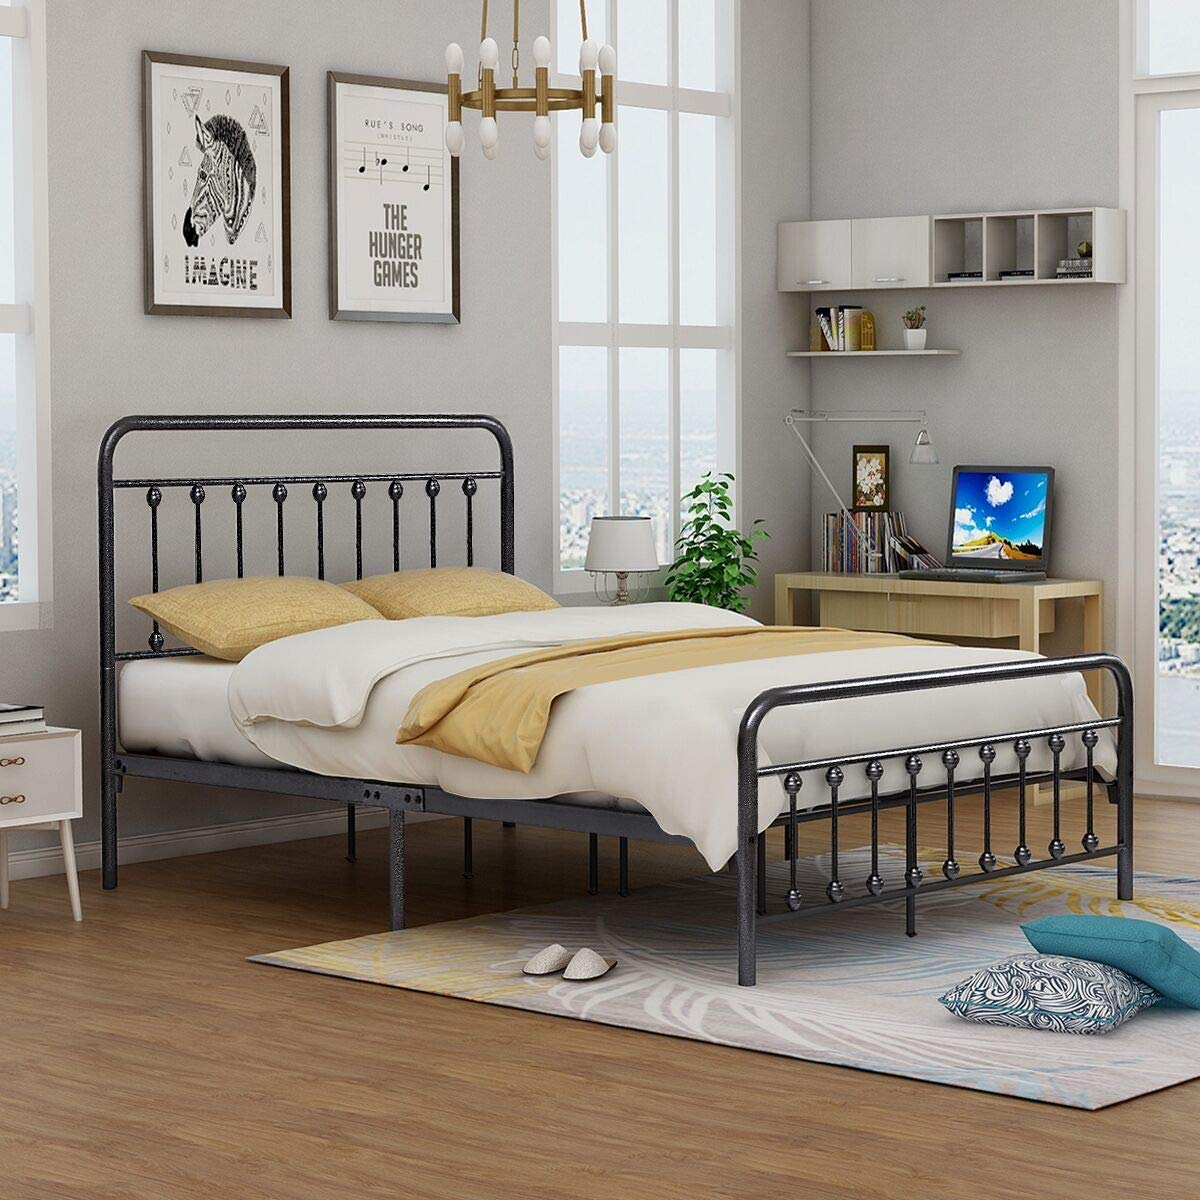 Cheap Vintage Bed Frame Find Vintage Bed Frame Deals On Line At Alibaba Com